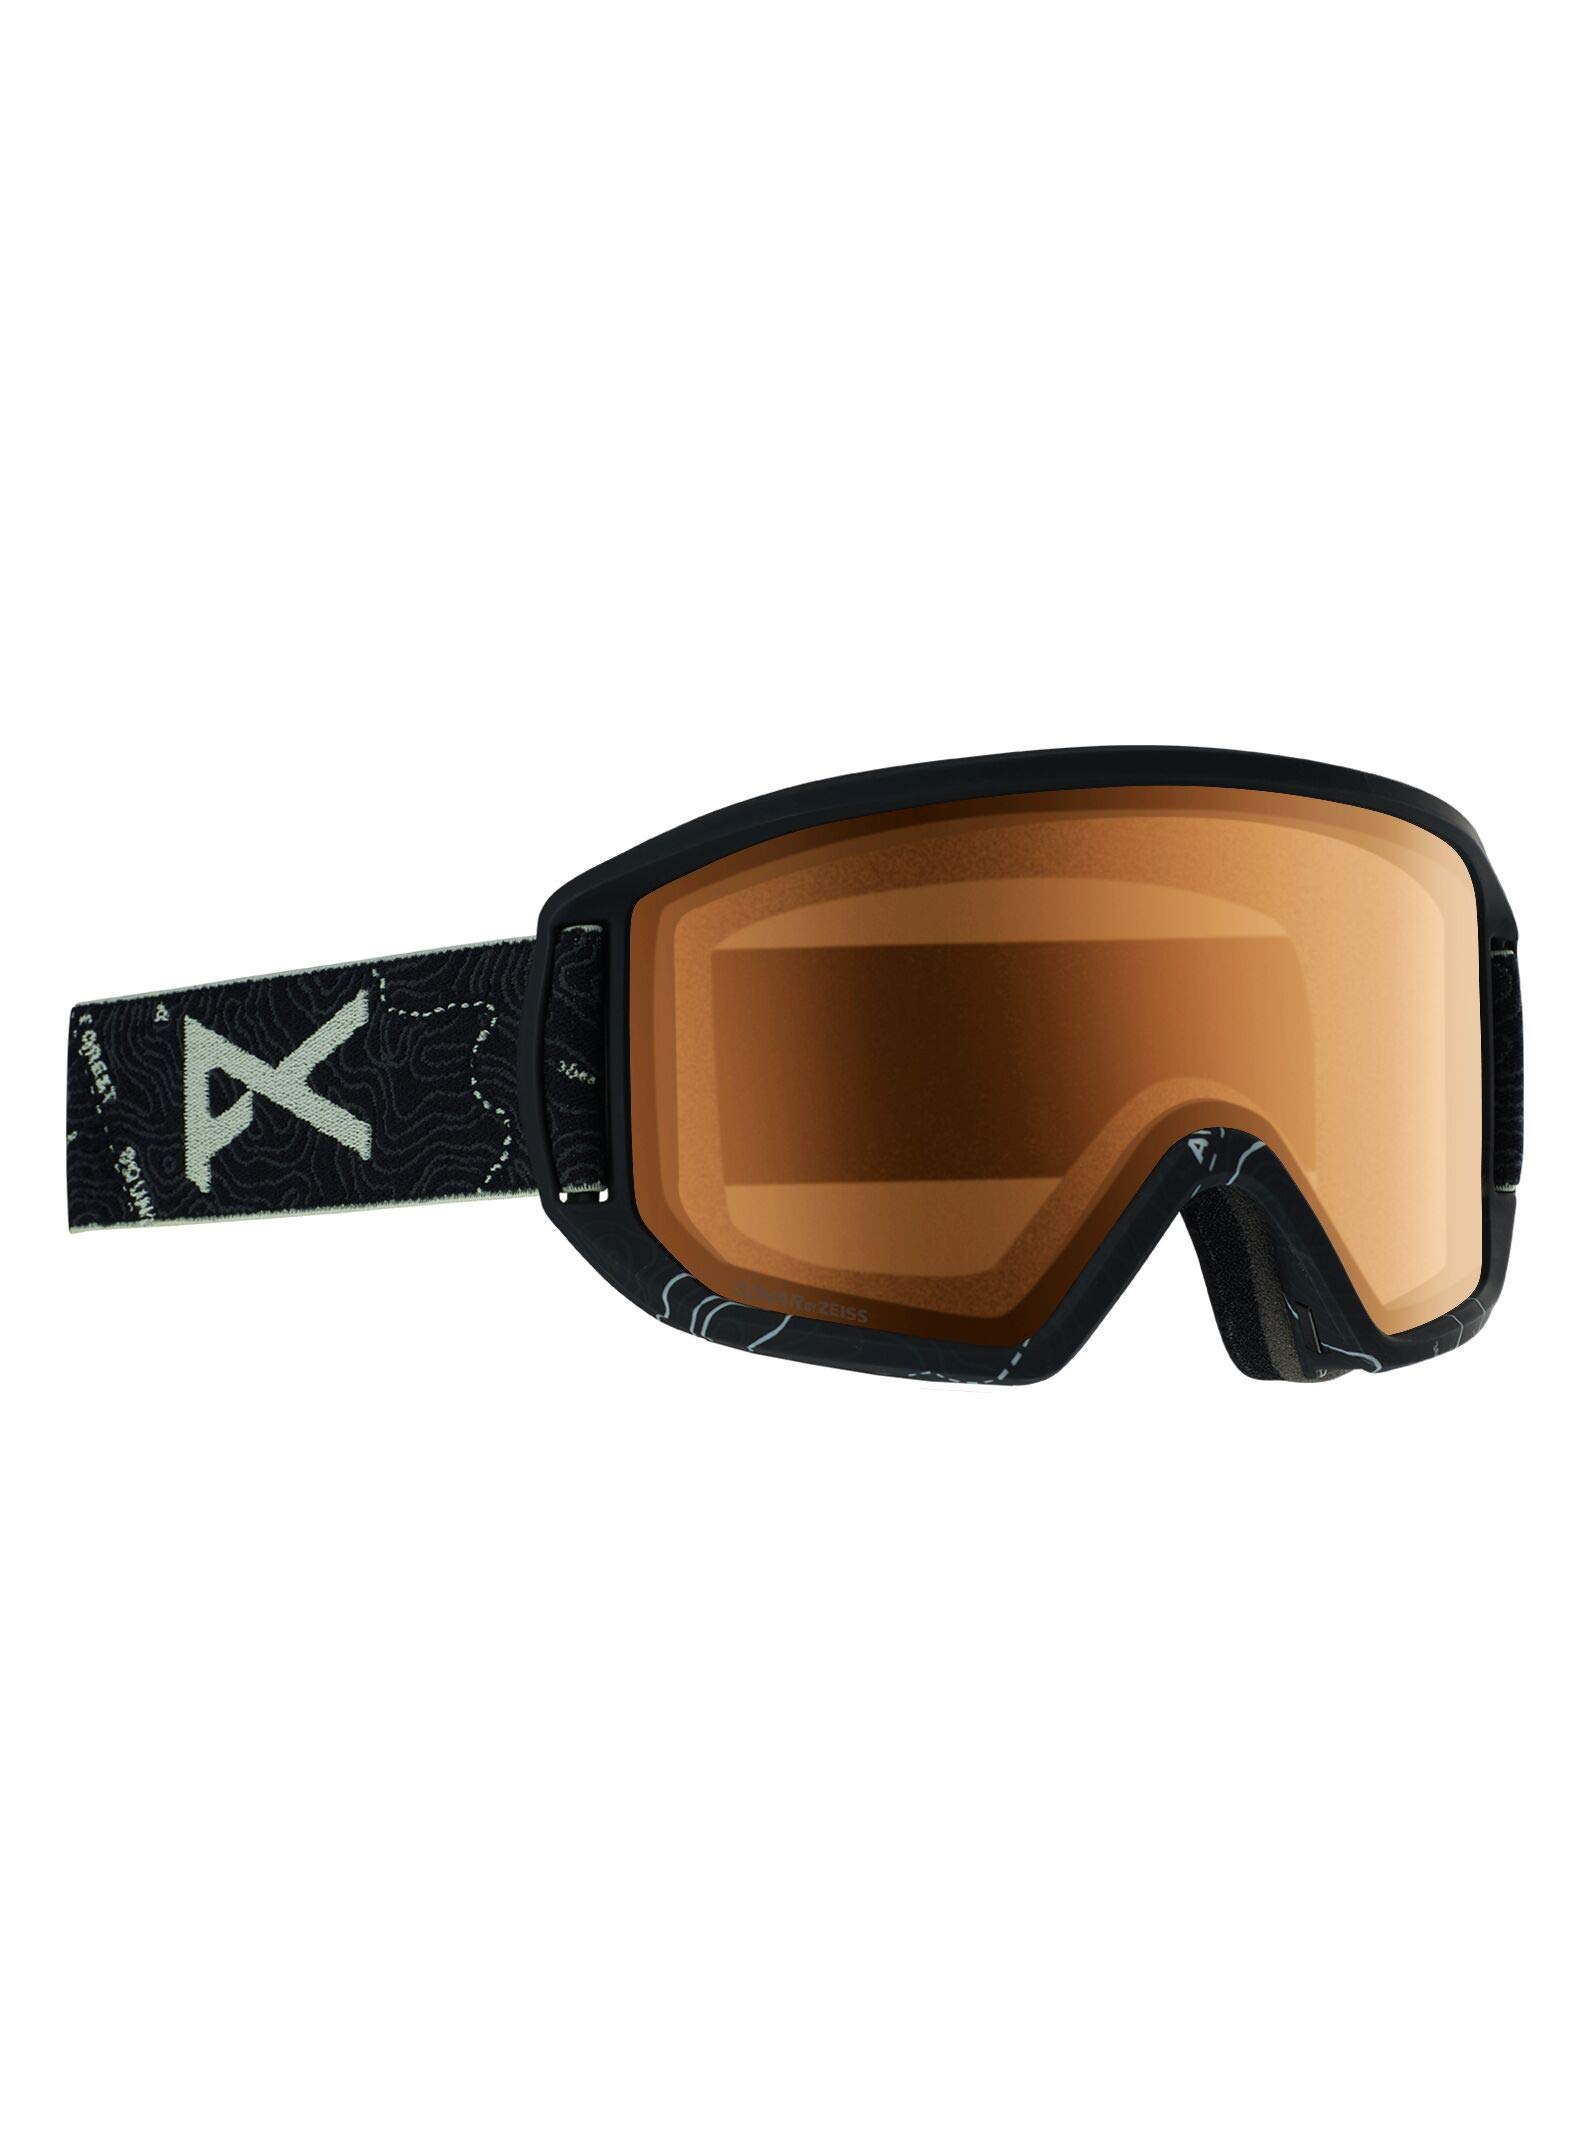 Anon Relapse Goggle (Available in Asian Fit, Select Colors Include MFI Mask)